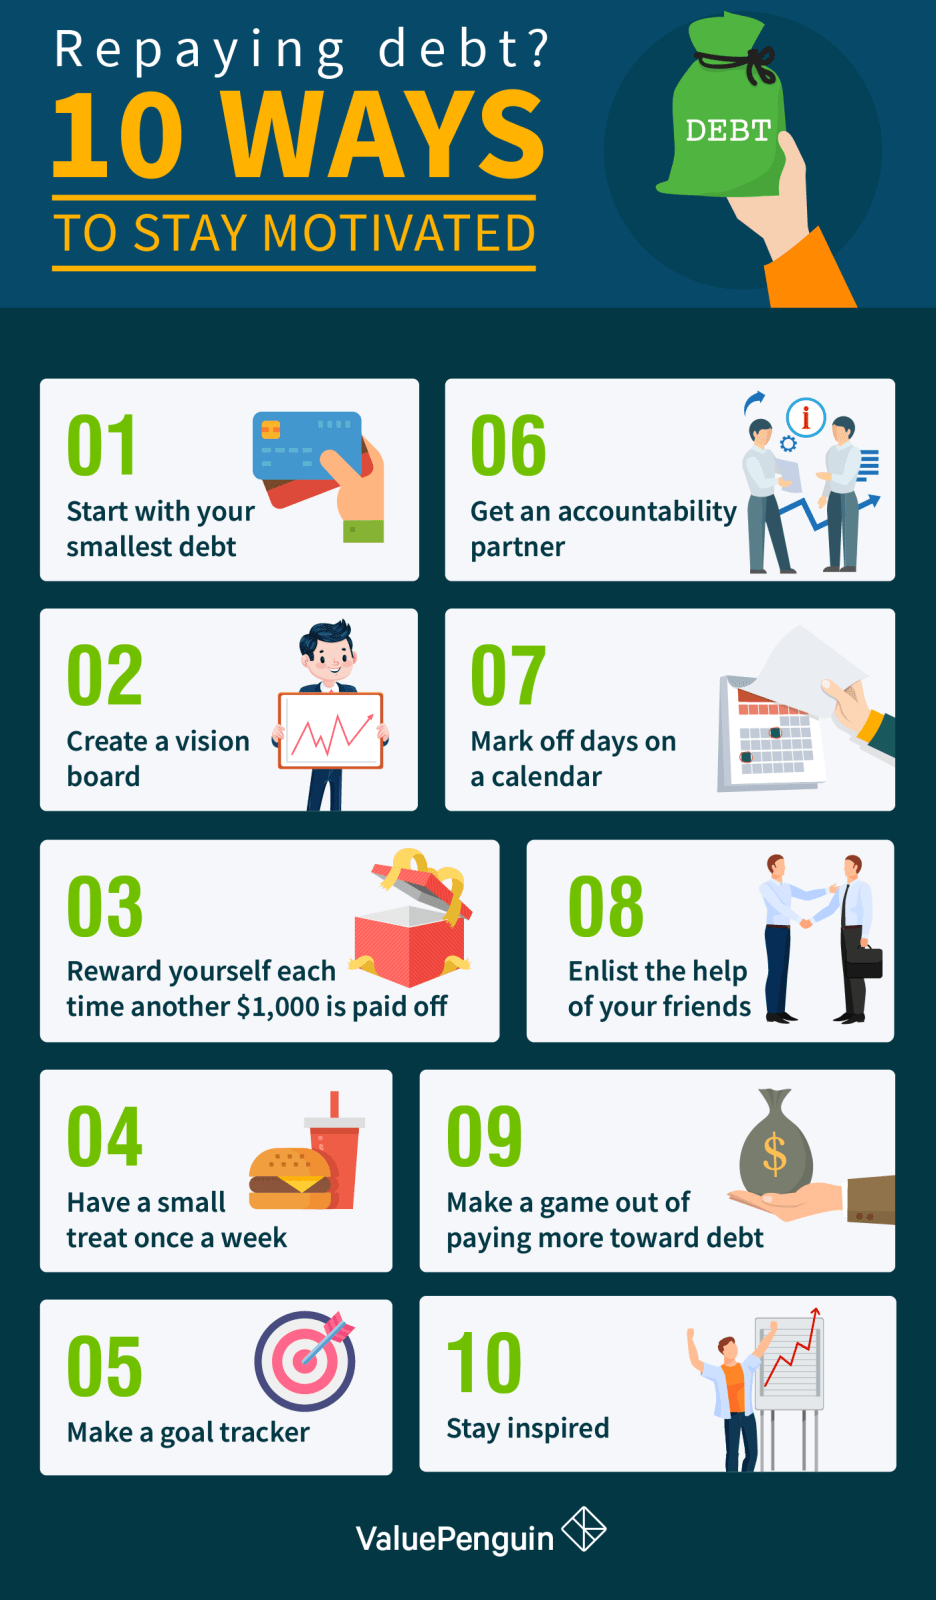 How to Stay Motivated As You Repay Debt